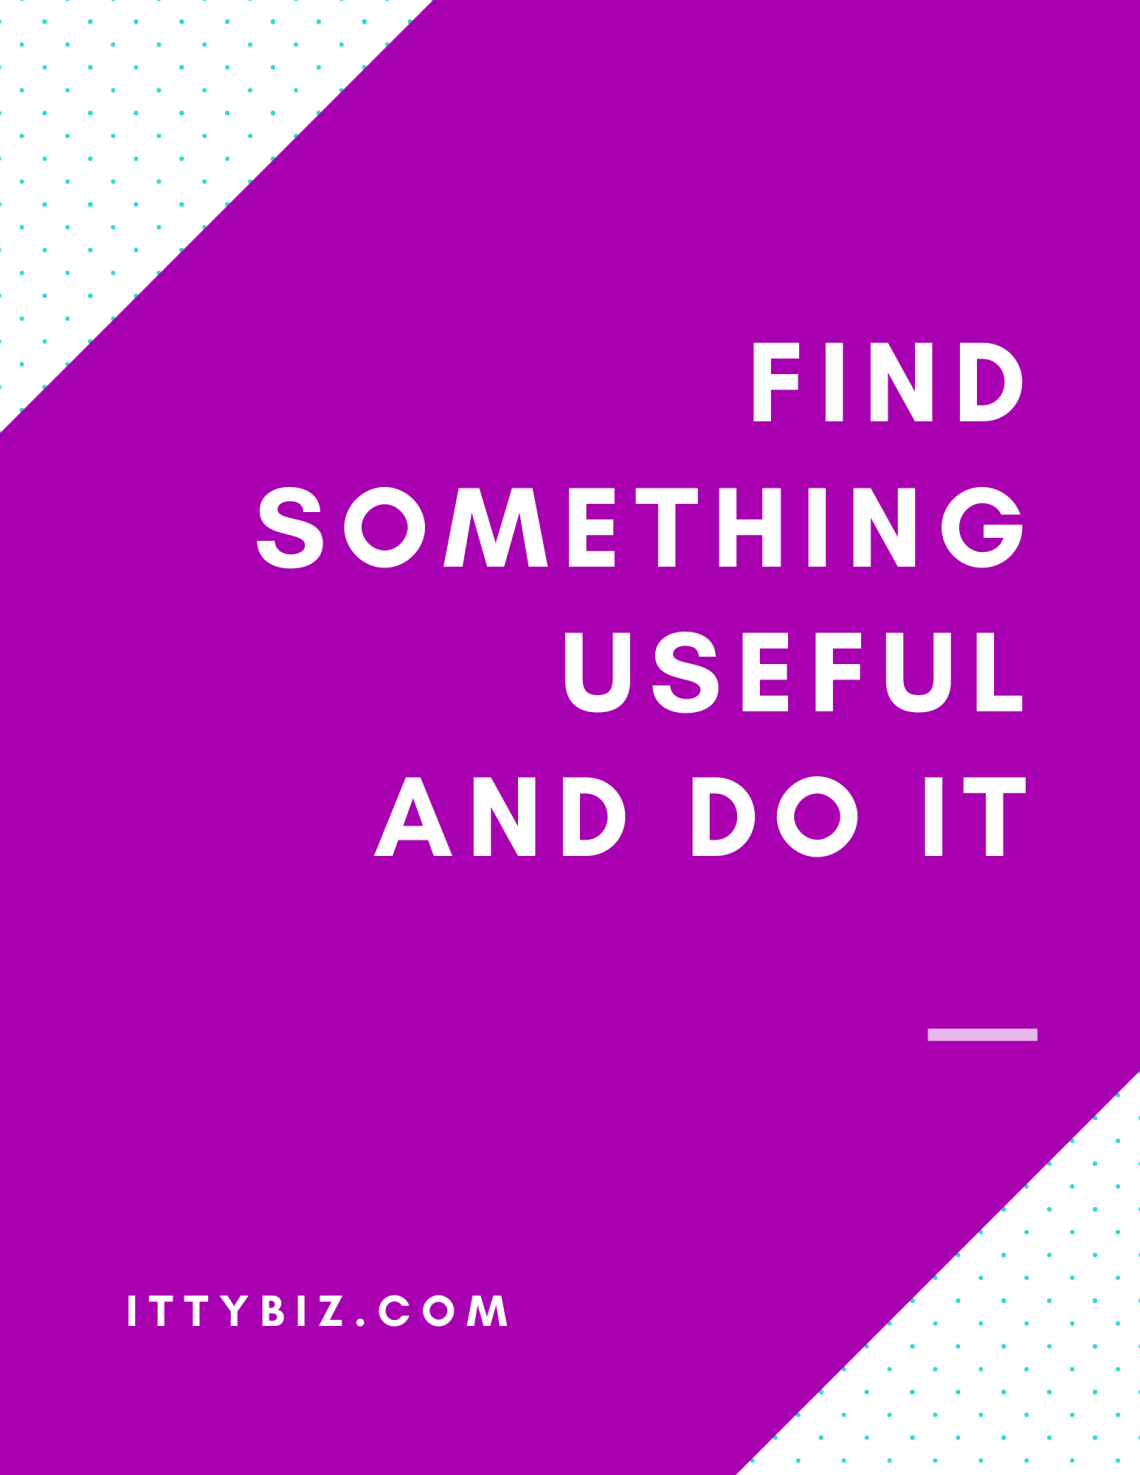 Find Something Useful and Do It